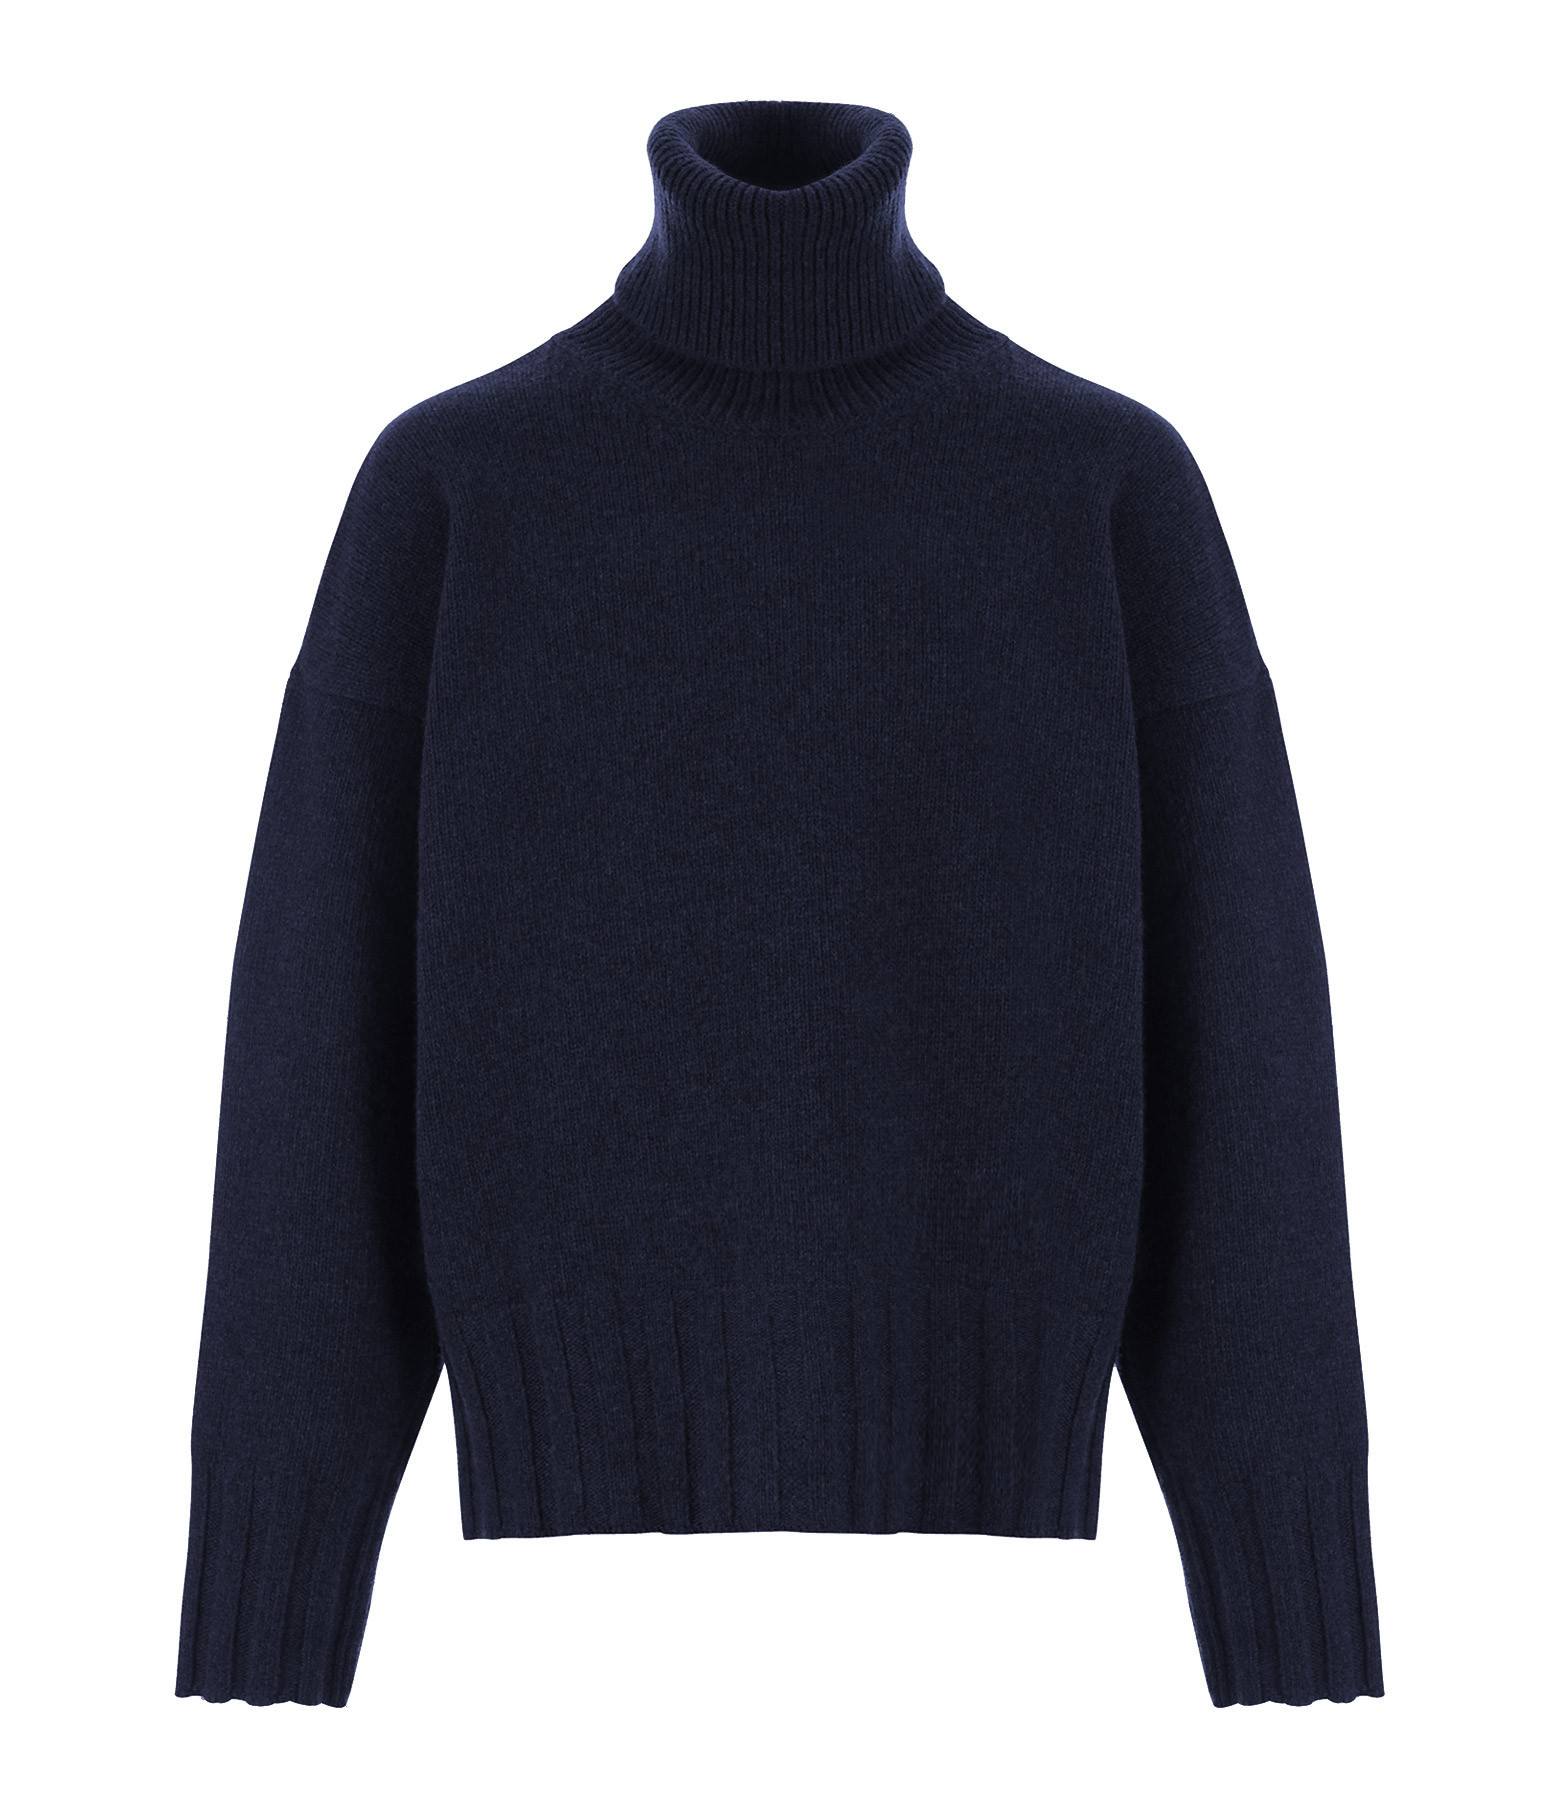 MADE IN TOMBOY - Pull Ely Col Roulé Laine Bleu Marine